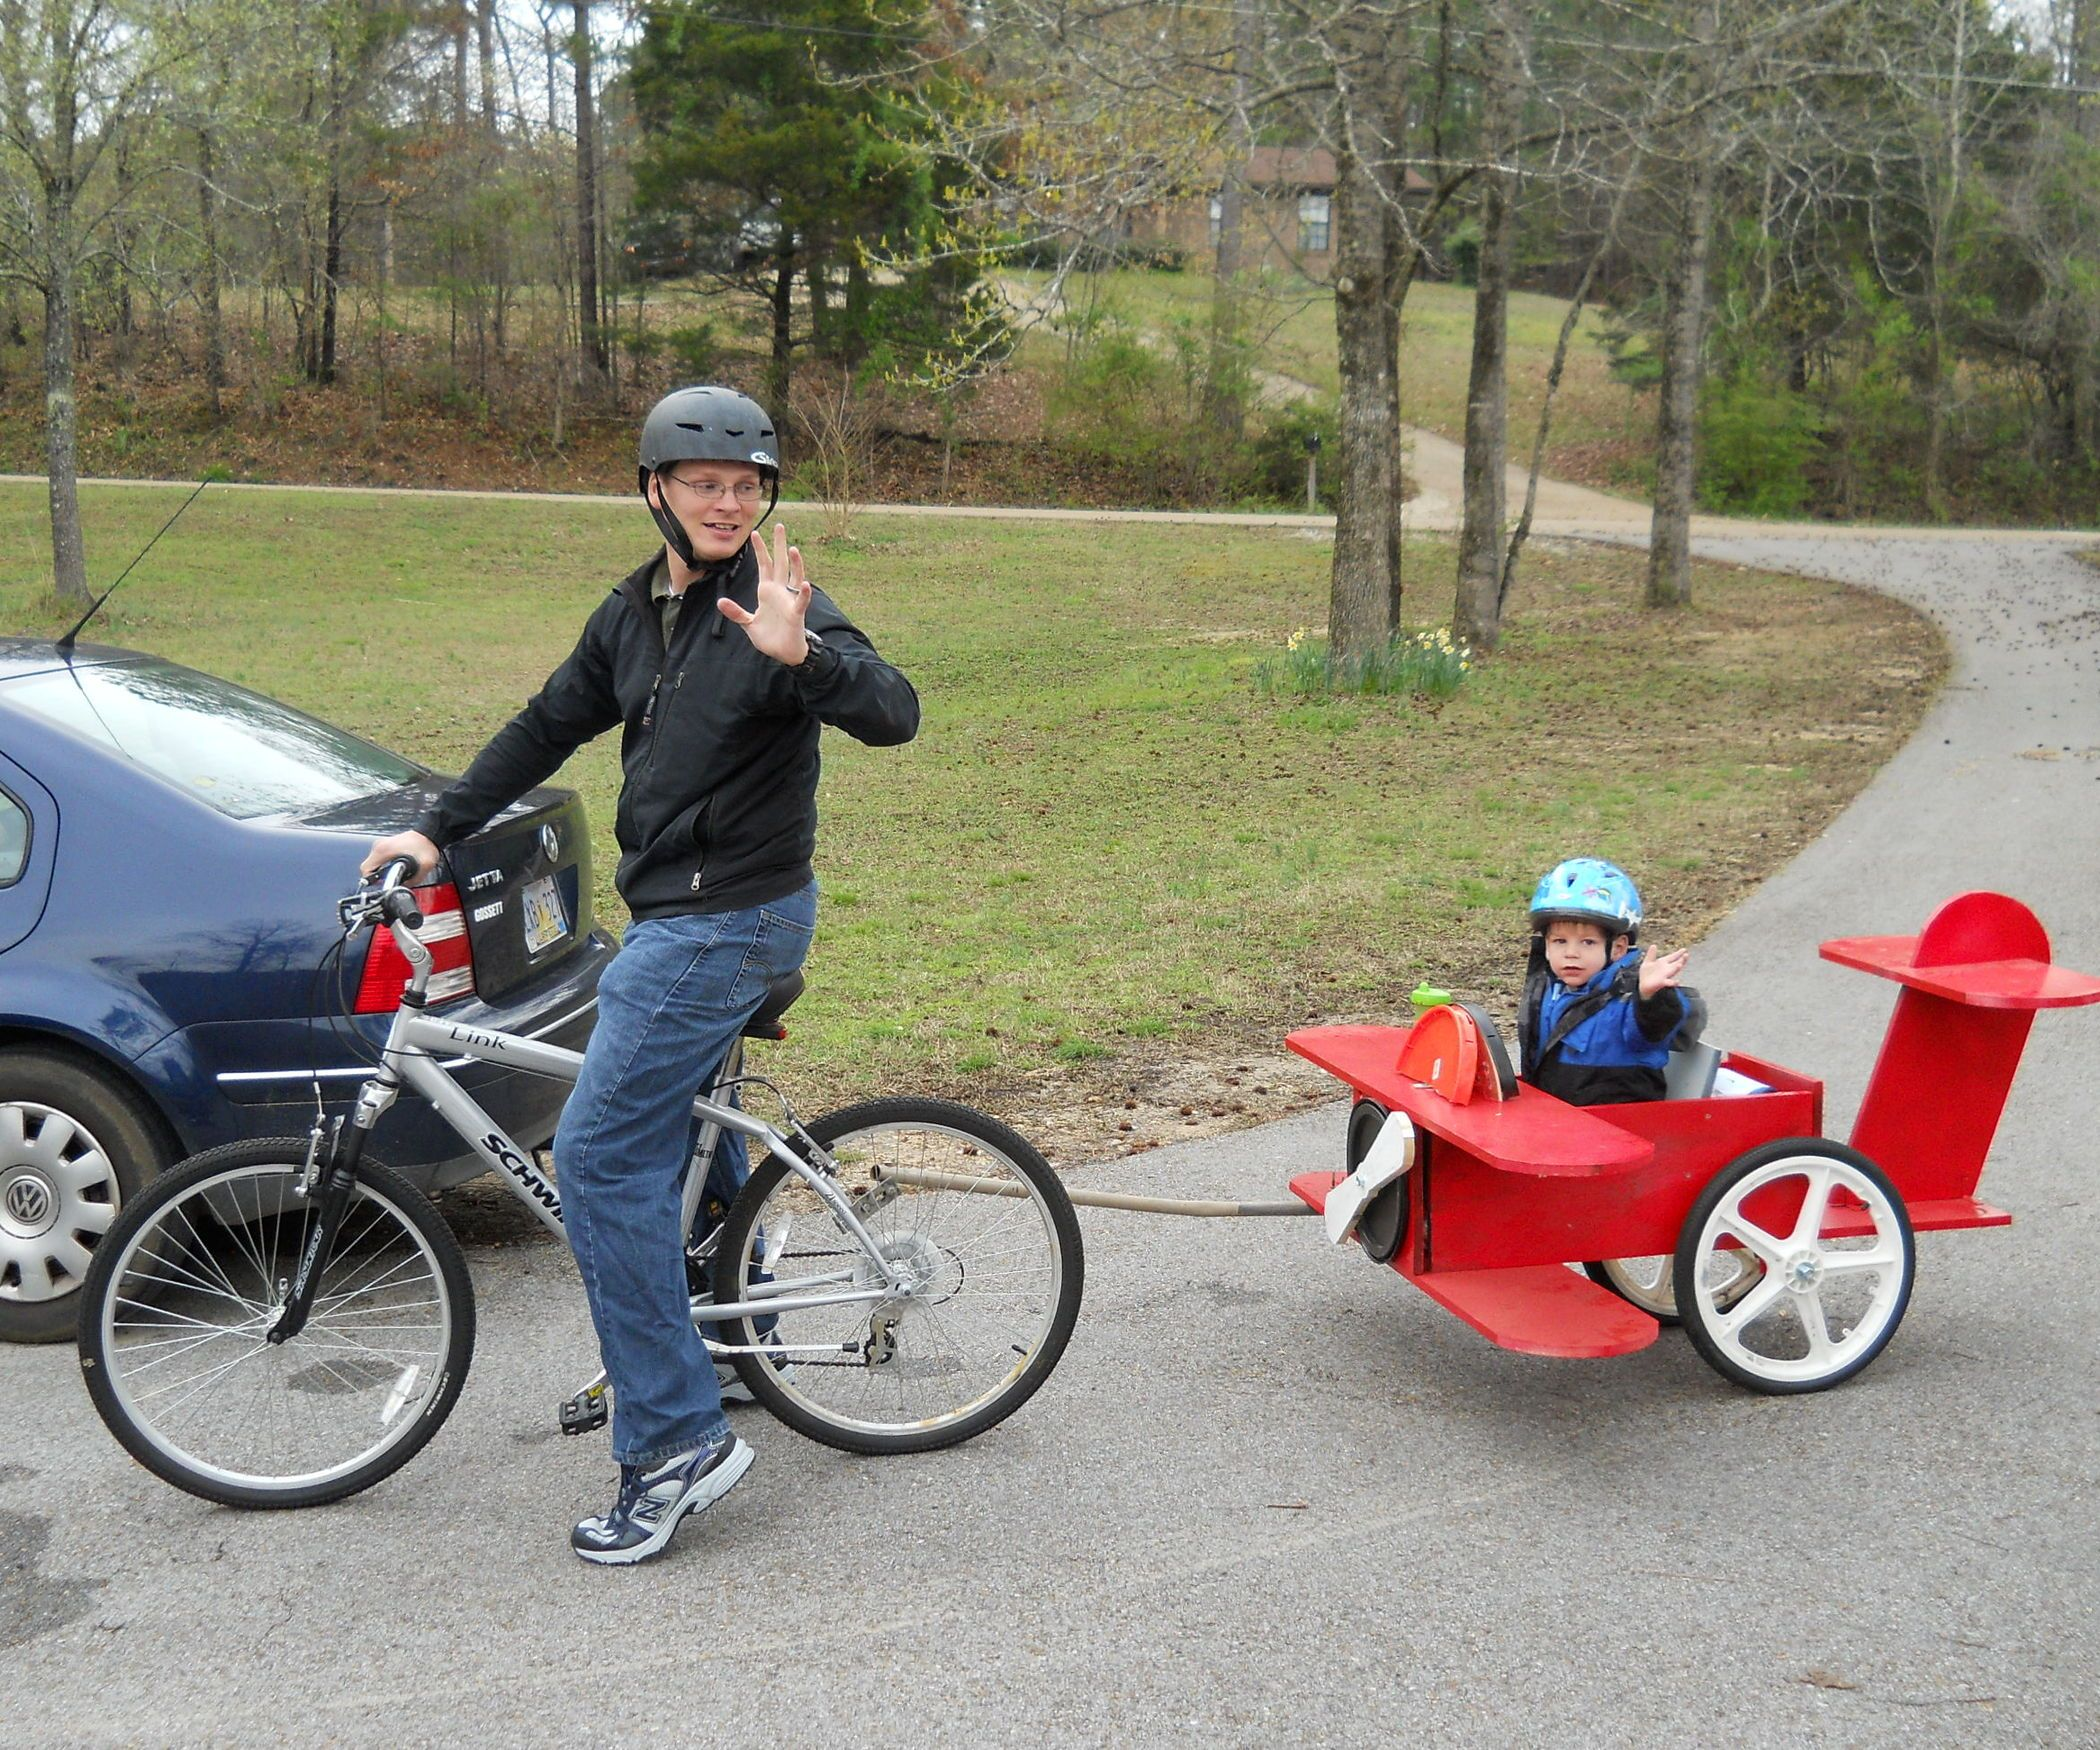 Red Baron Child S Bicycle Trailer Small Airplanes Airplanes And